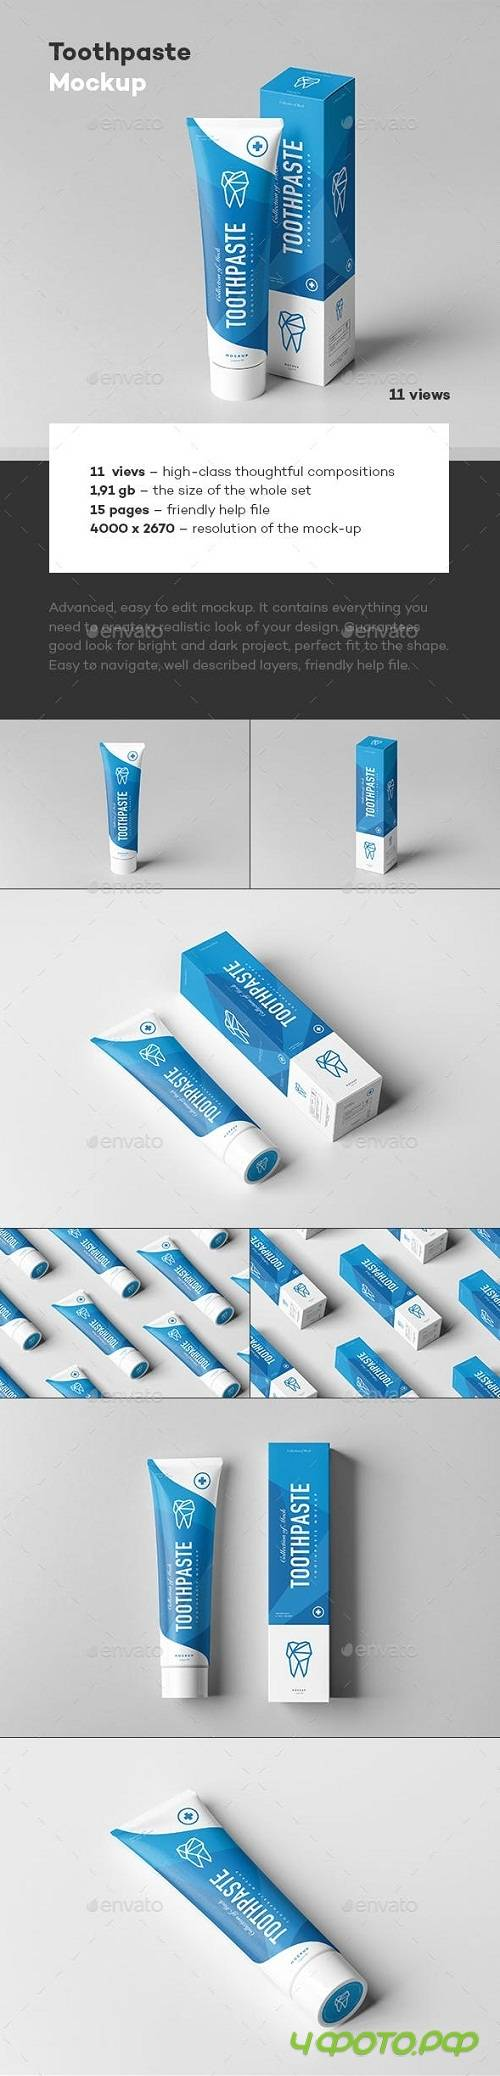 Toothpaste Mock-up - 22969957